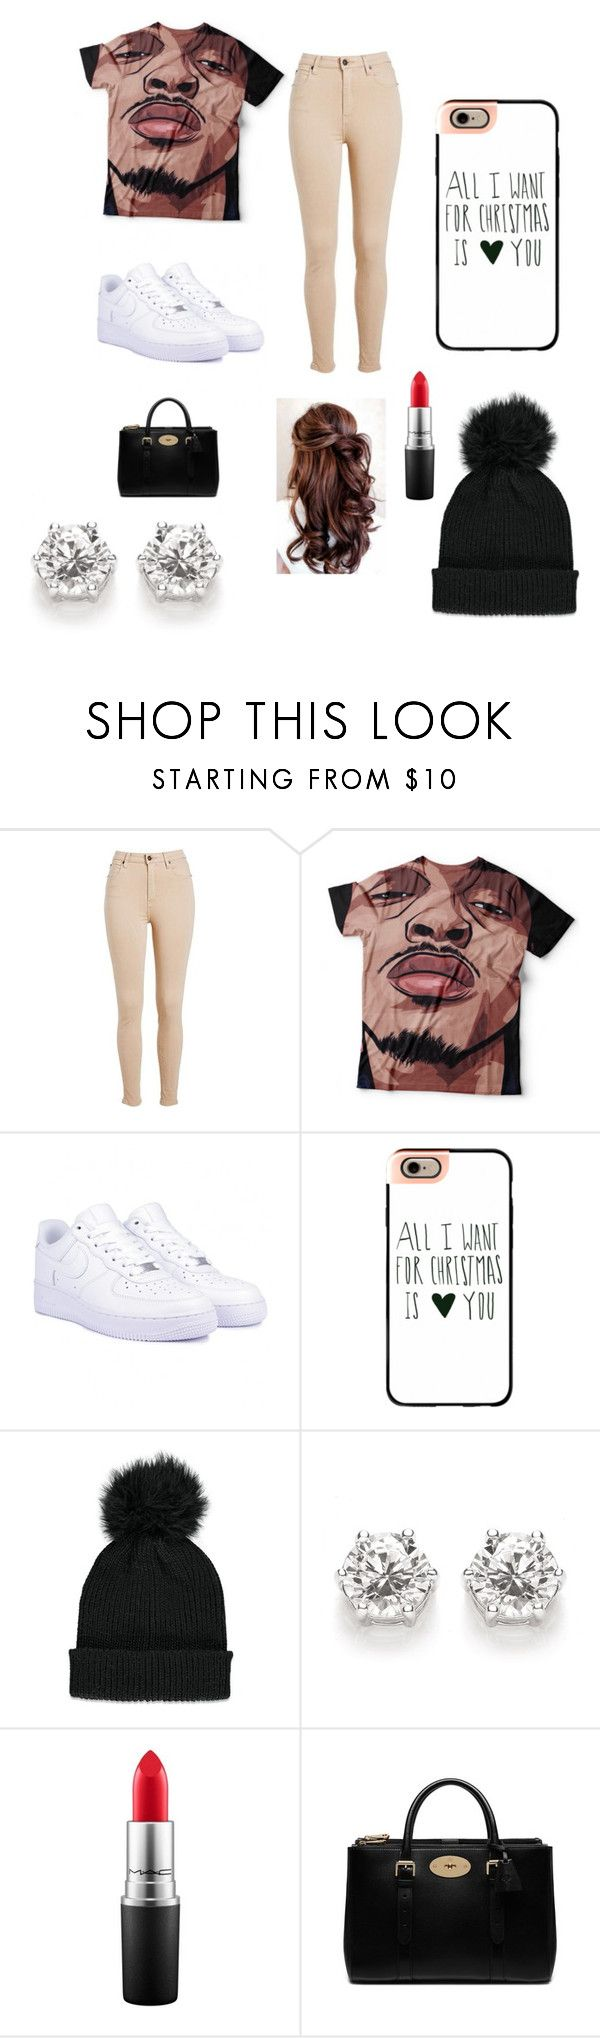 """August Alsina Concert featuring diamond earrings"" by shakira-luvs-august-alsina ❤ liked on Polyvore featuring NIKE, Casetify, Forever 21, MAC Cosmetics and Mulberry"